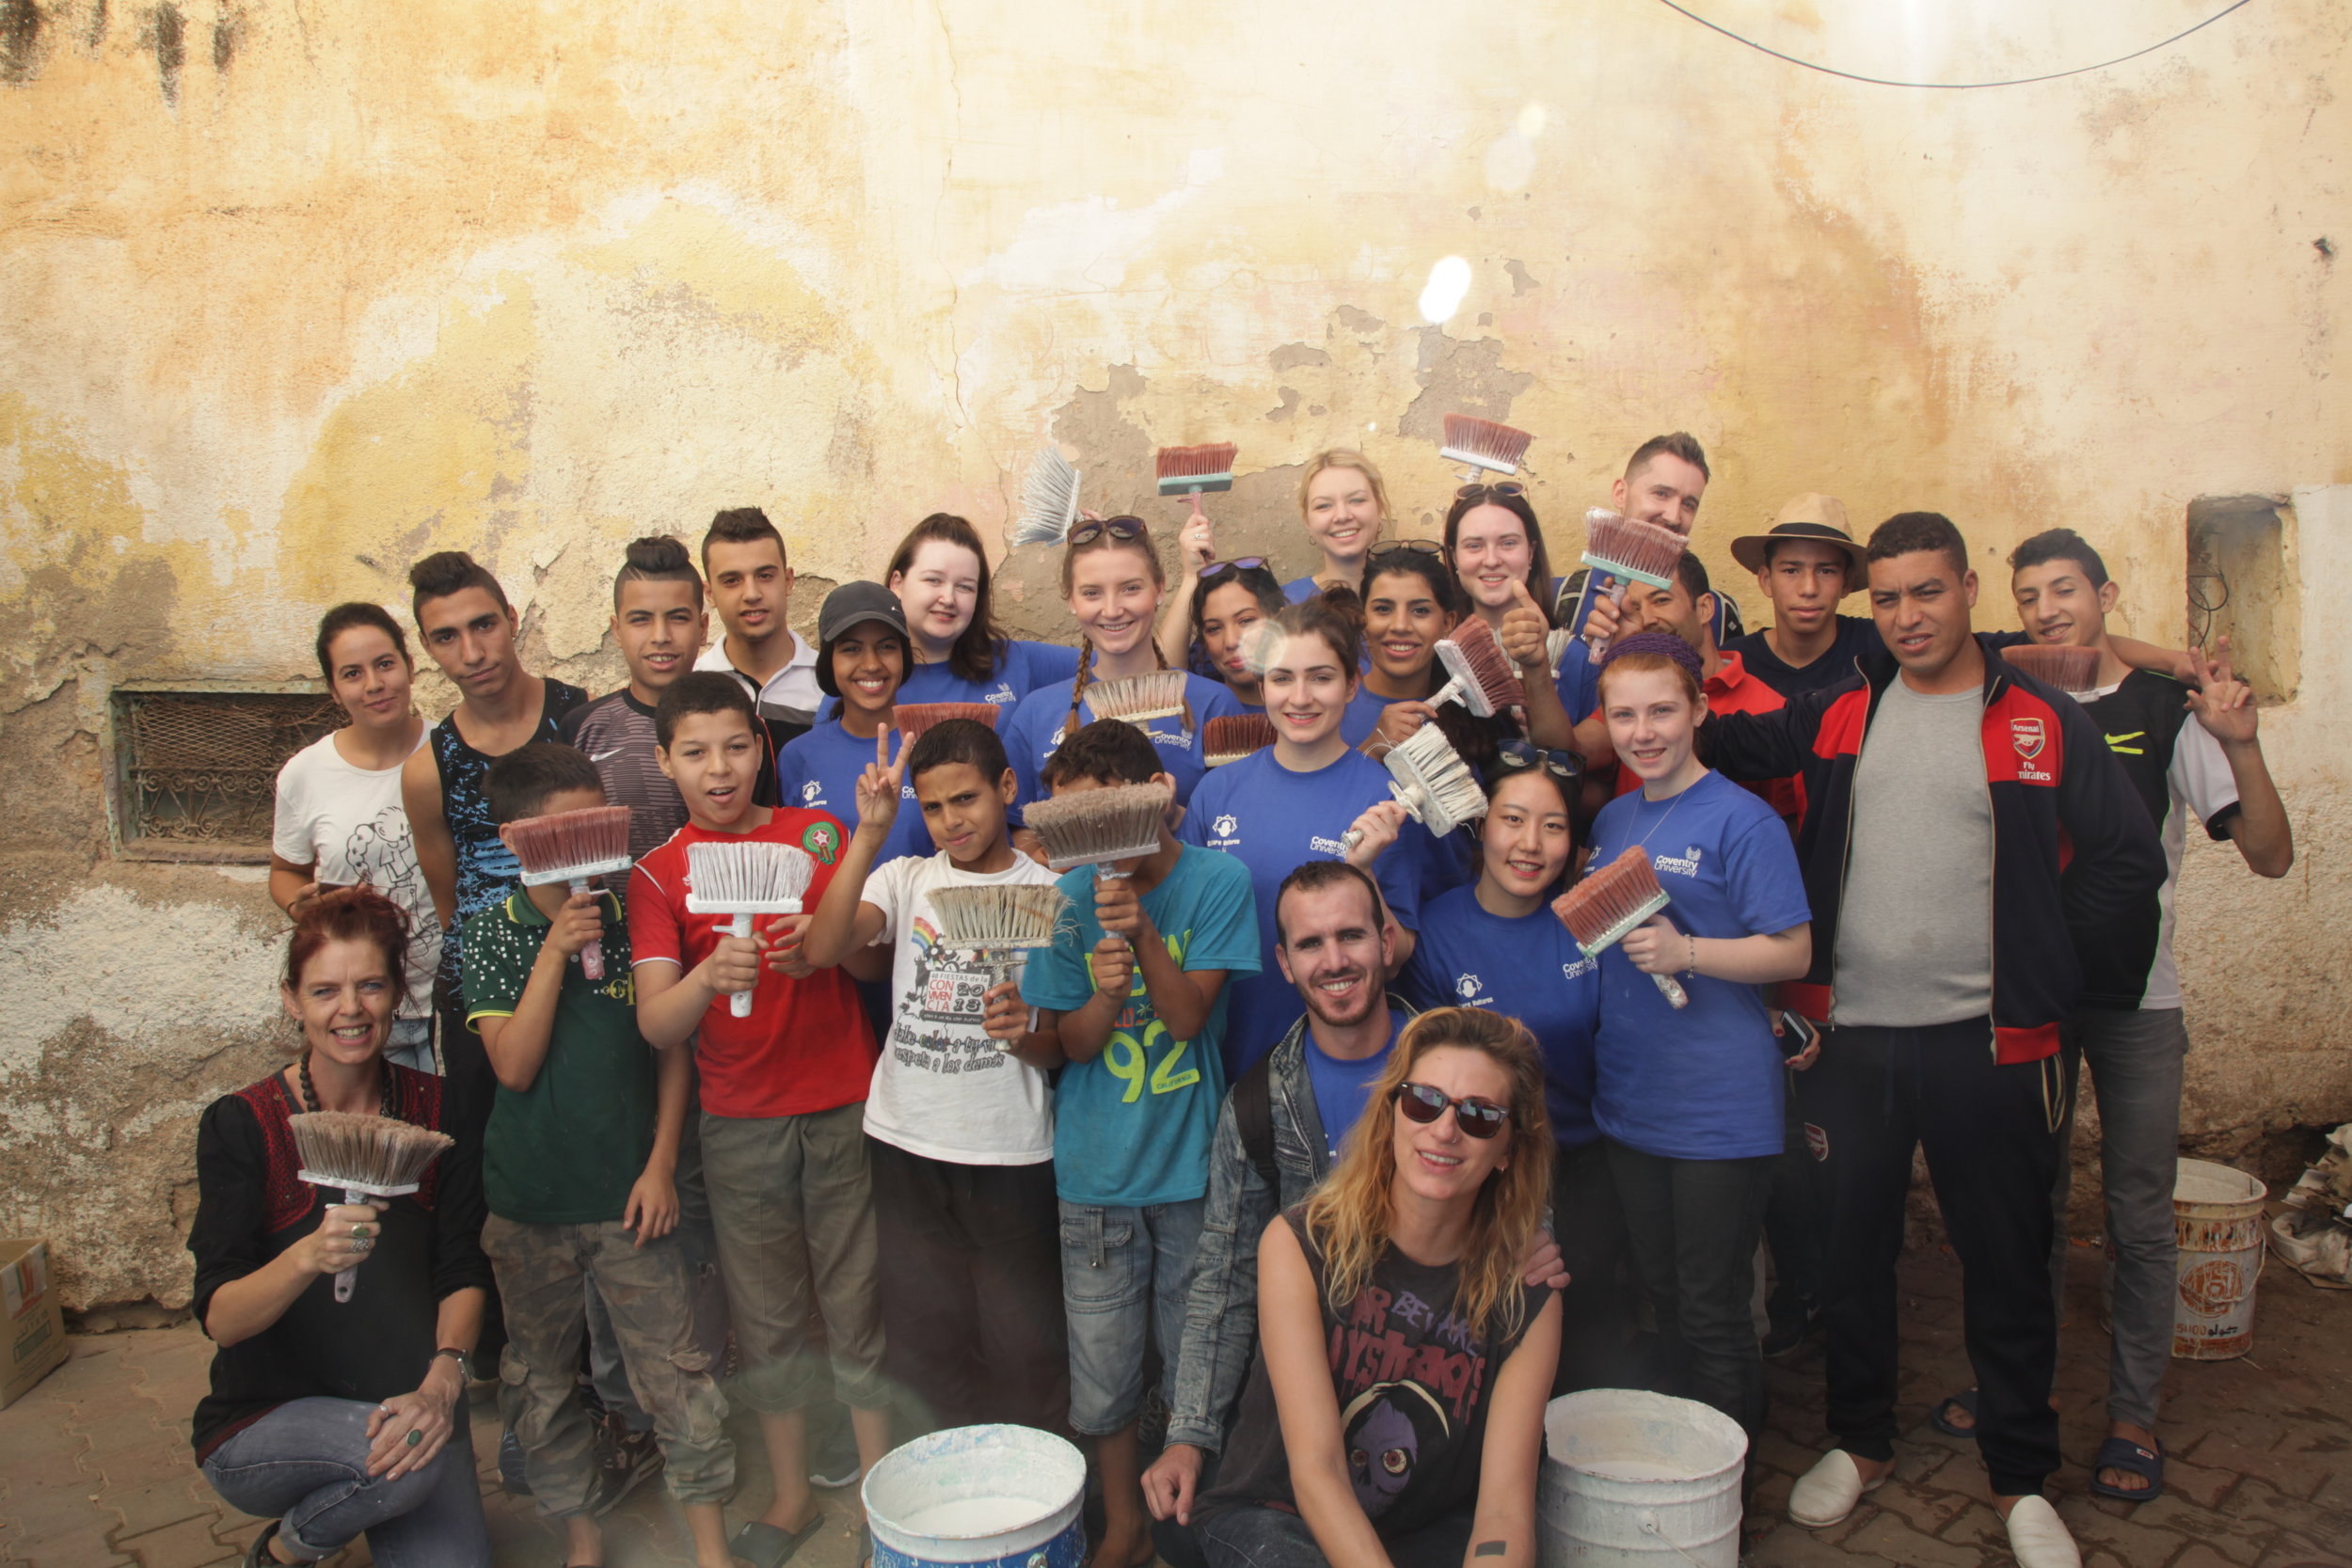 Painting the walls of Sefrou with Jess Stephens (Culture Vultures), Brendan StJohn, local residents of Sefrou and Coventry University students